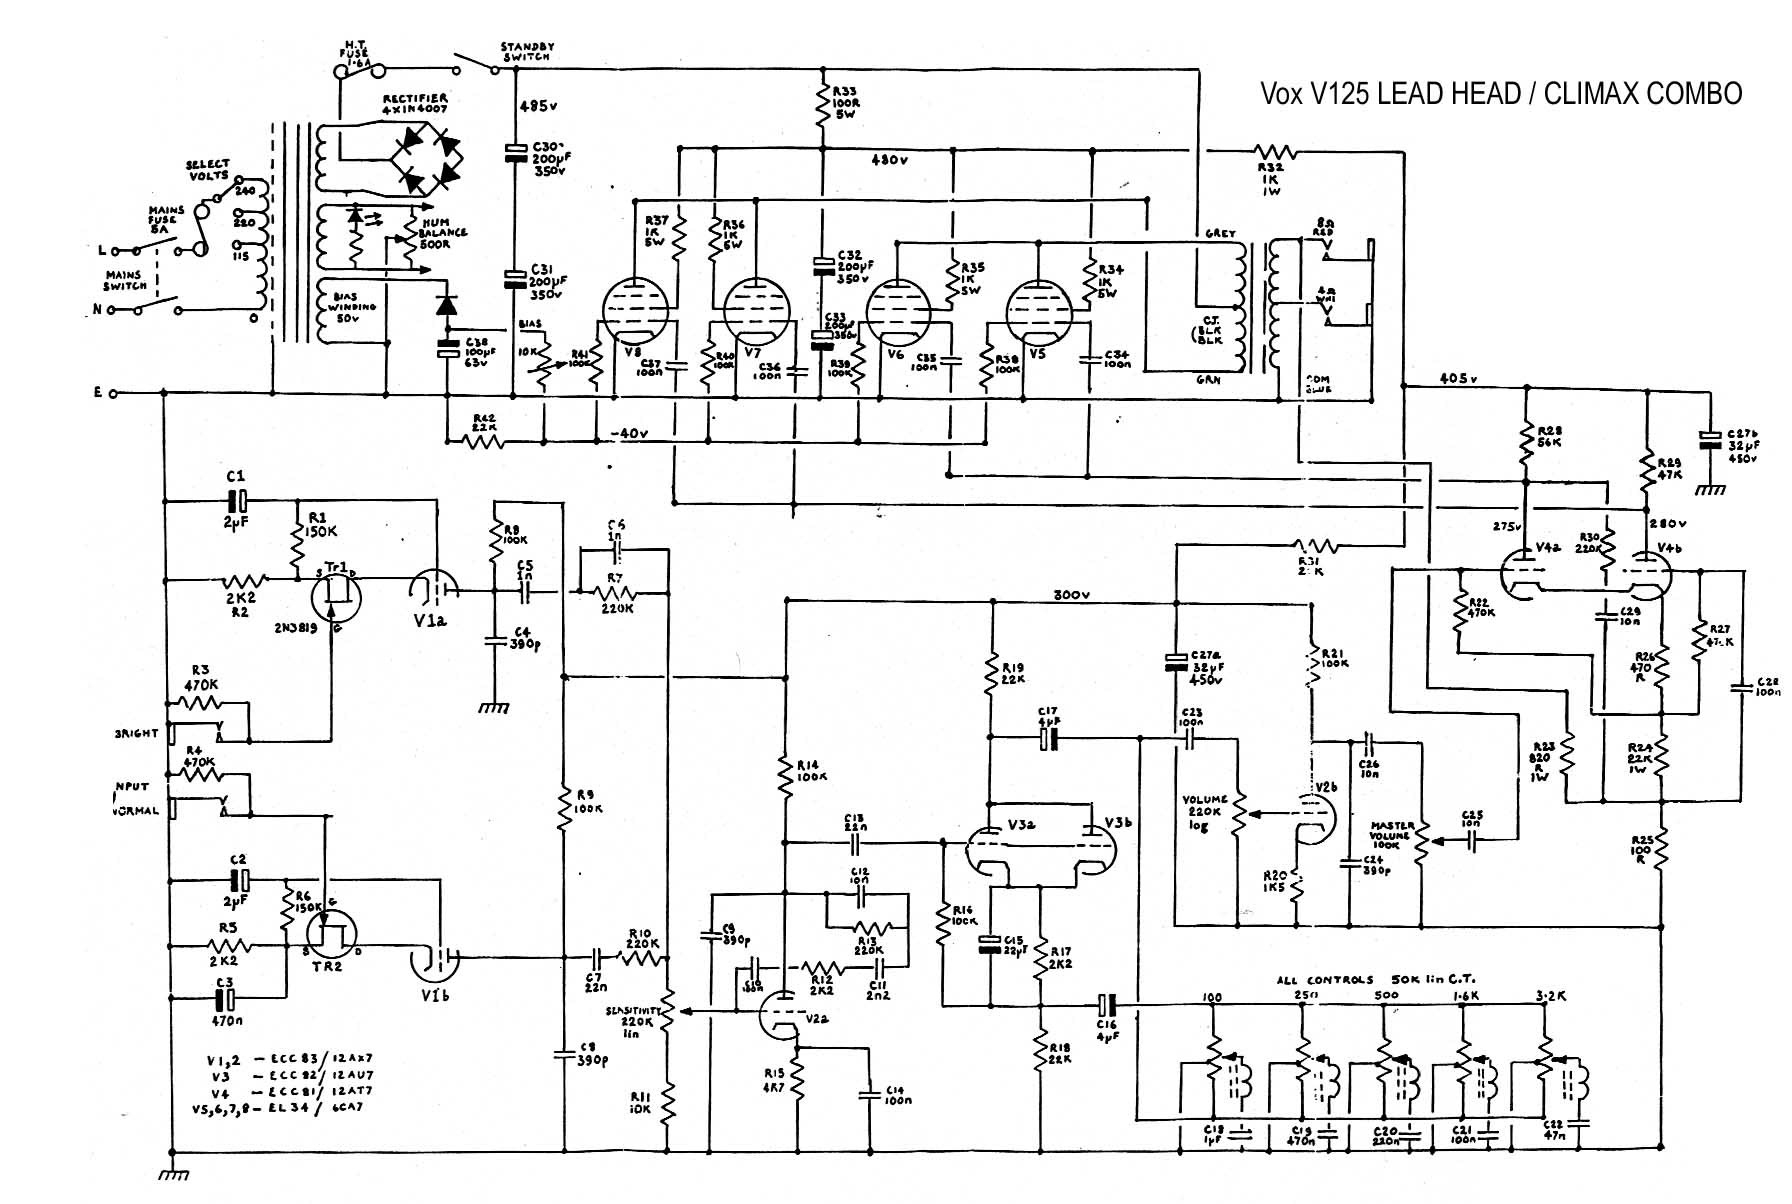 Cable Wiring Schematic